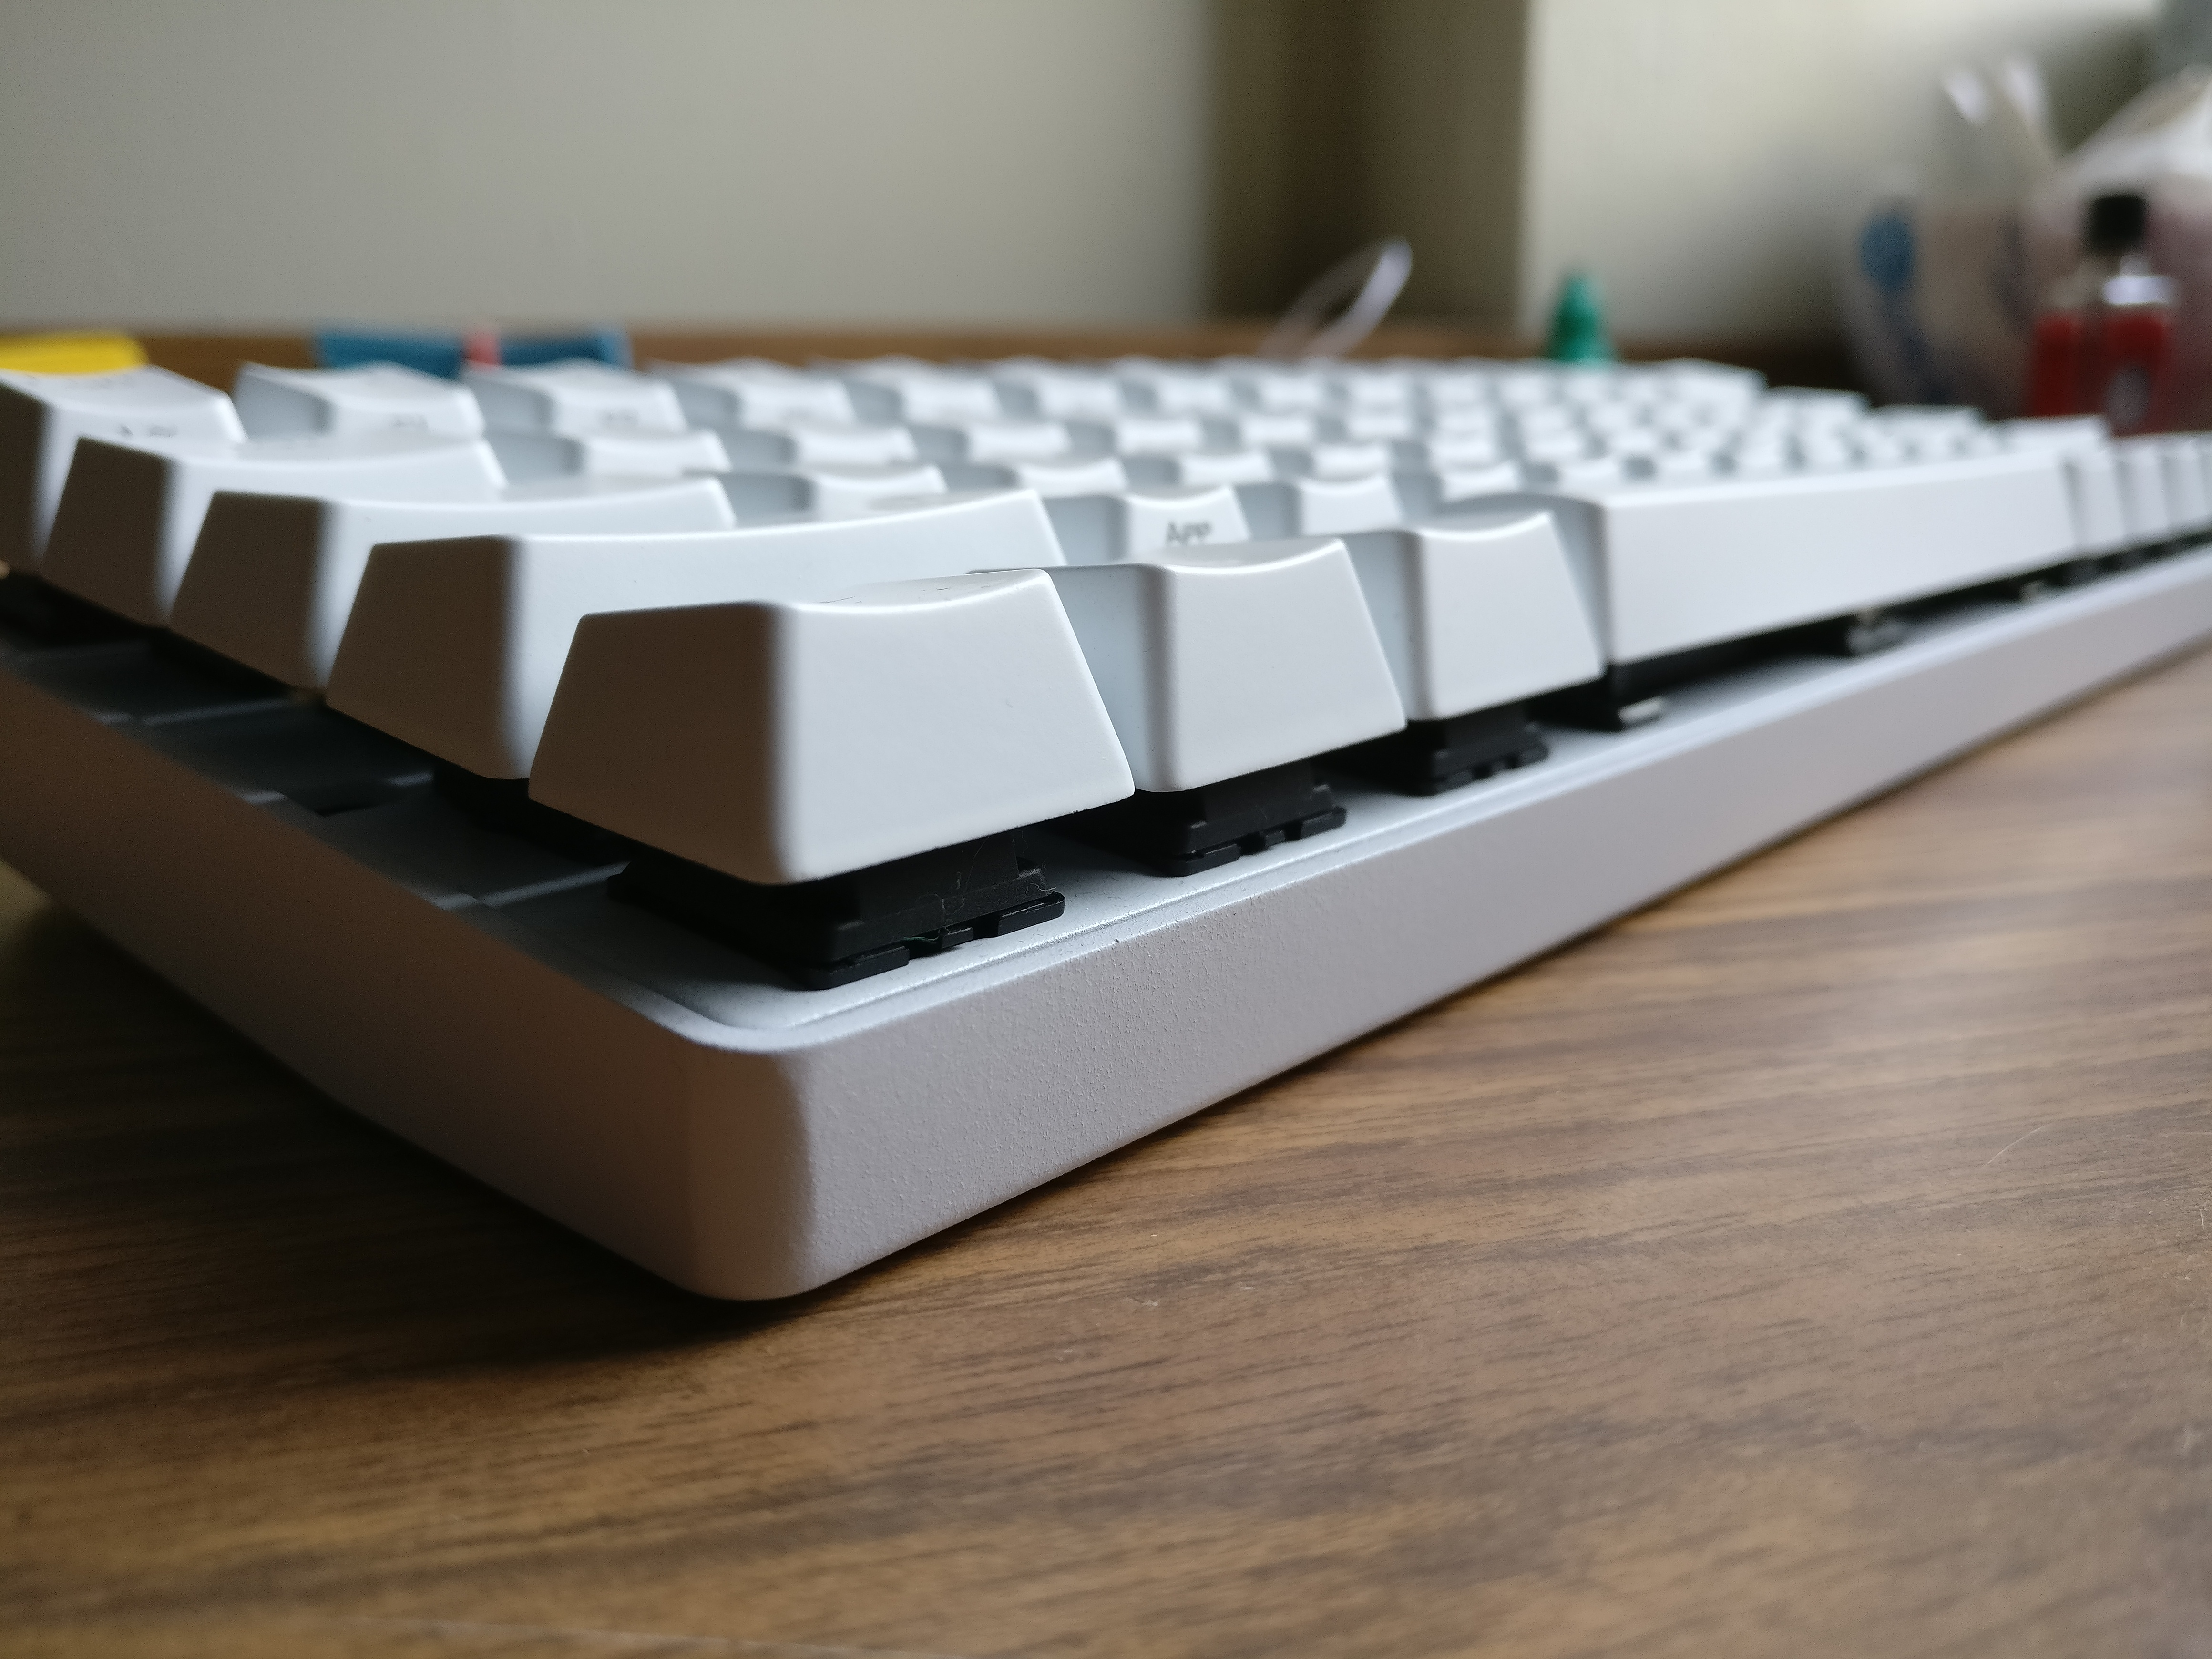 Vortex Pok3r Review – Programming Life | House of Words